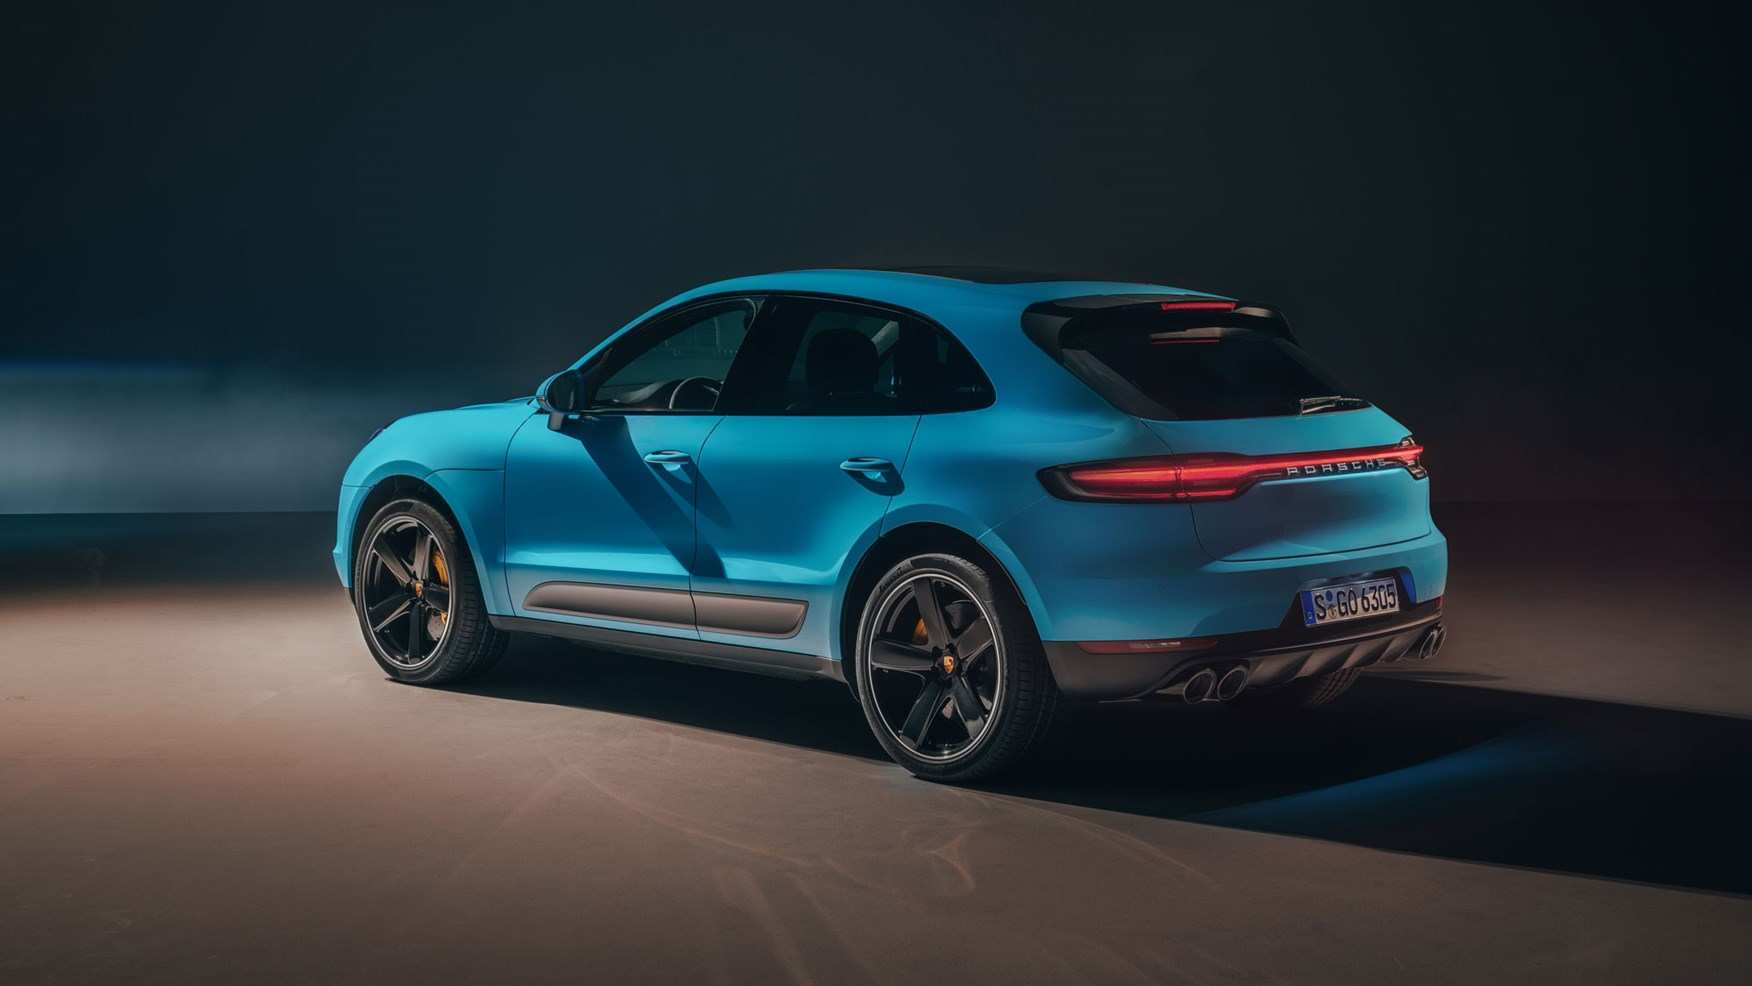 89 All New 2019 Porsche Macan Release Date Reviews for 2019 Porsche Macan Release Date